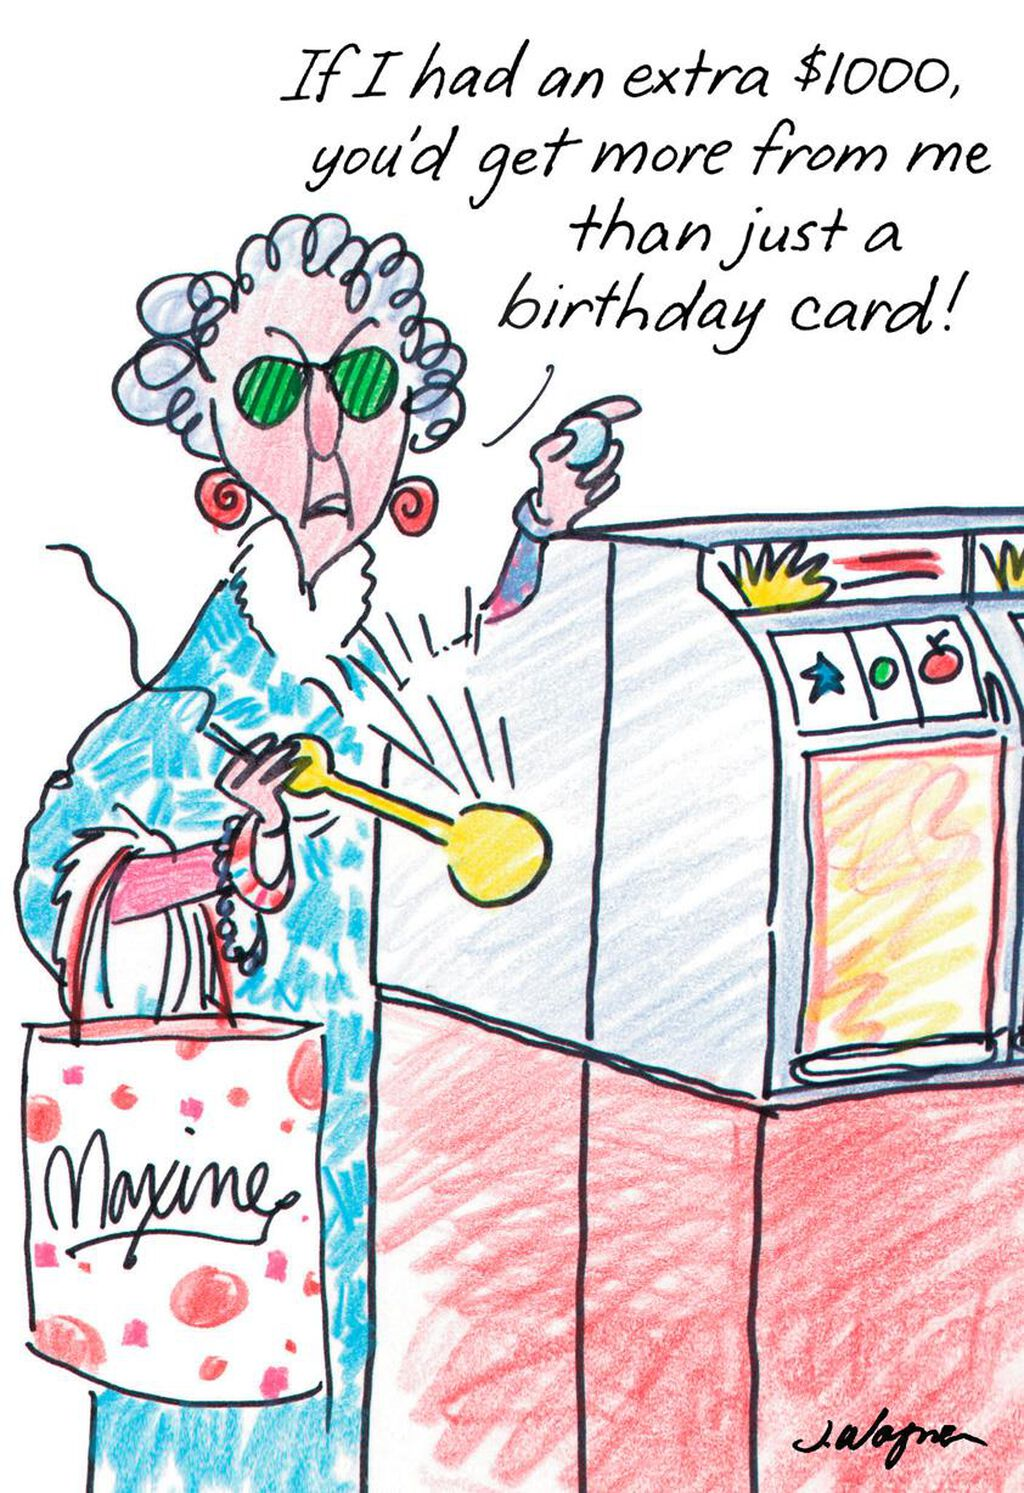 Maxine Postcard From Hawaii Funny Birthday Card Greeting Cards